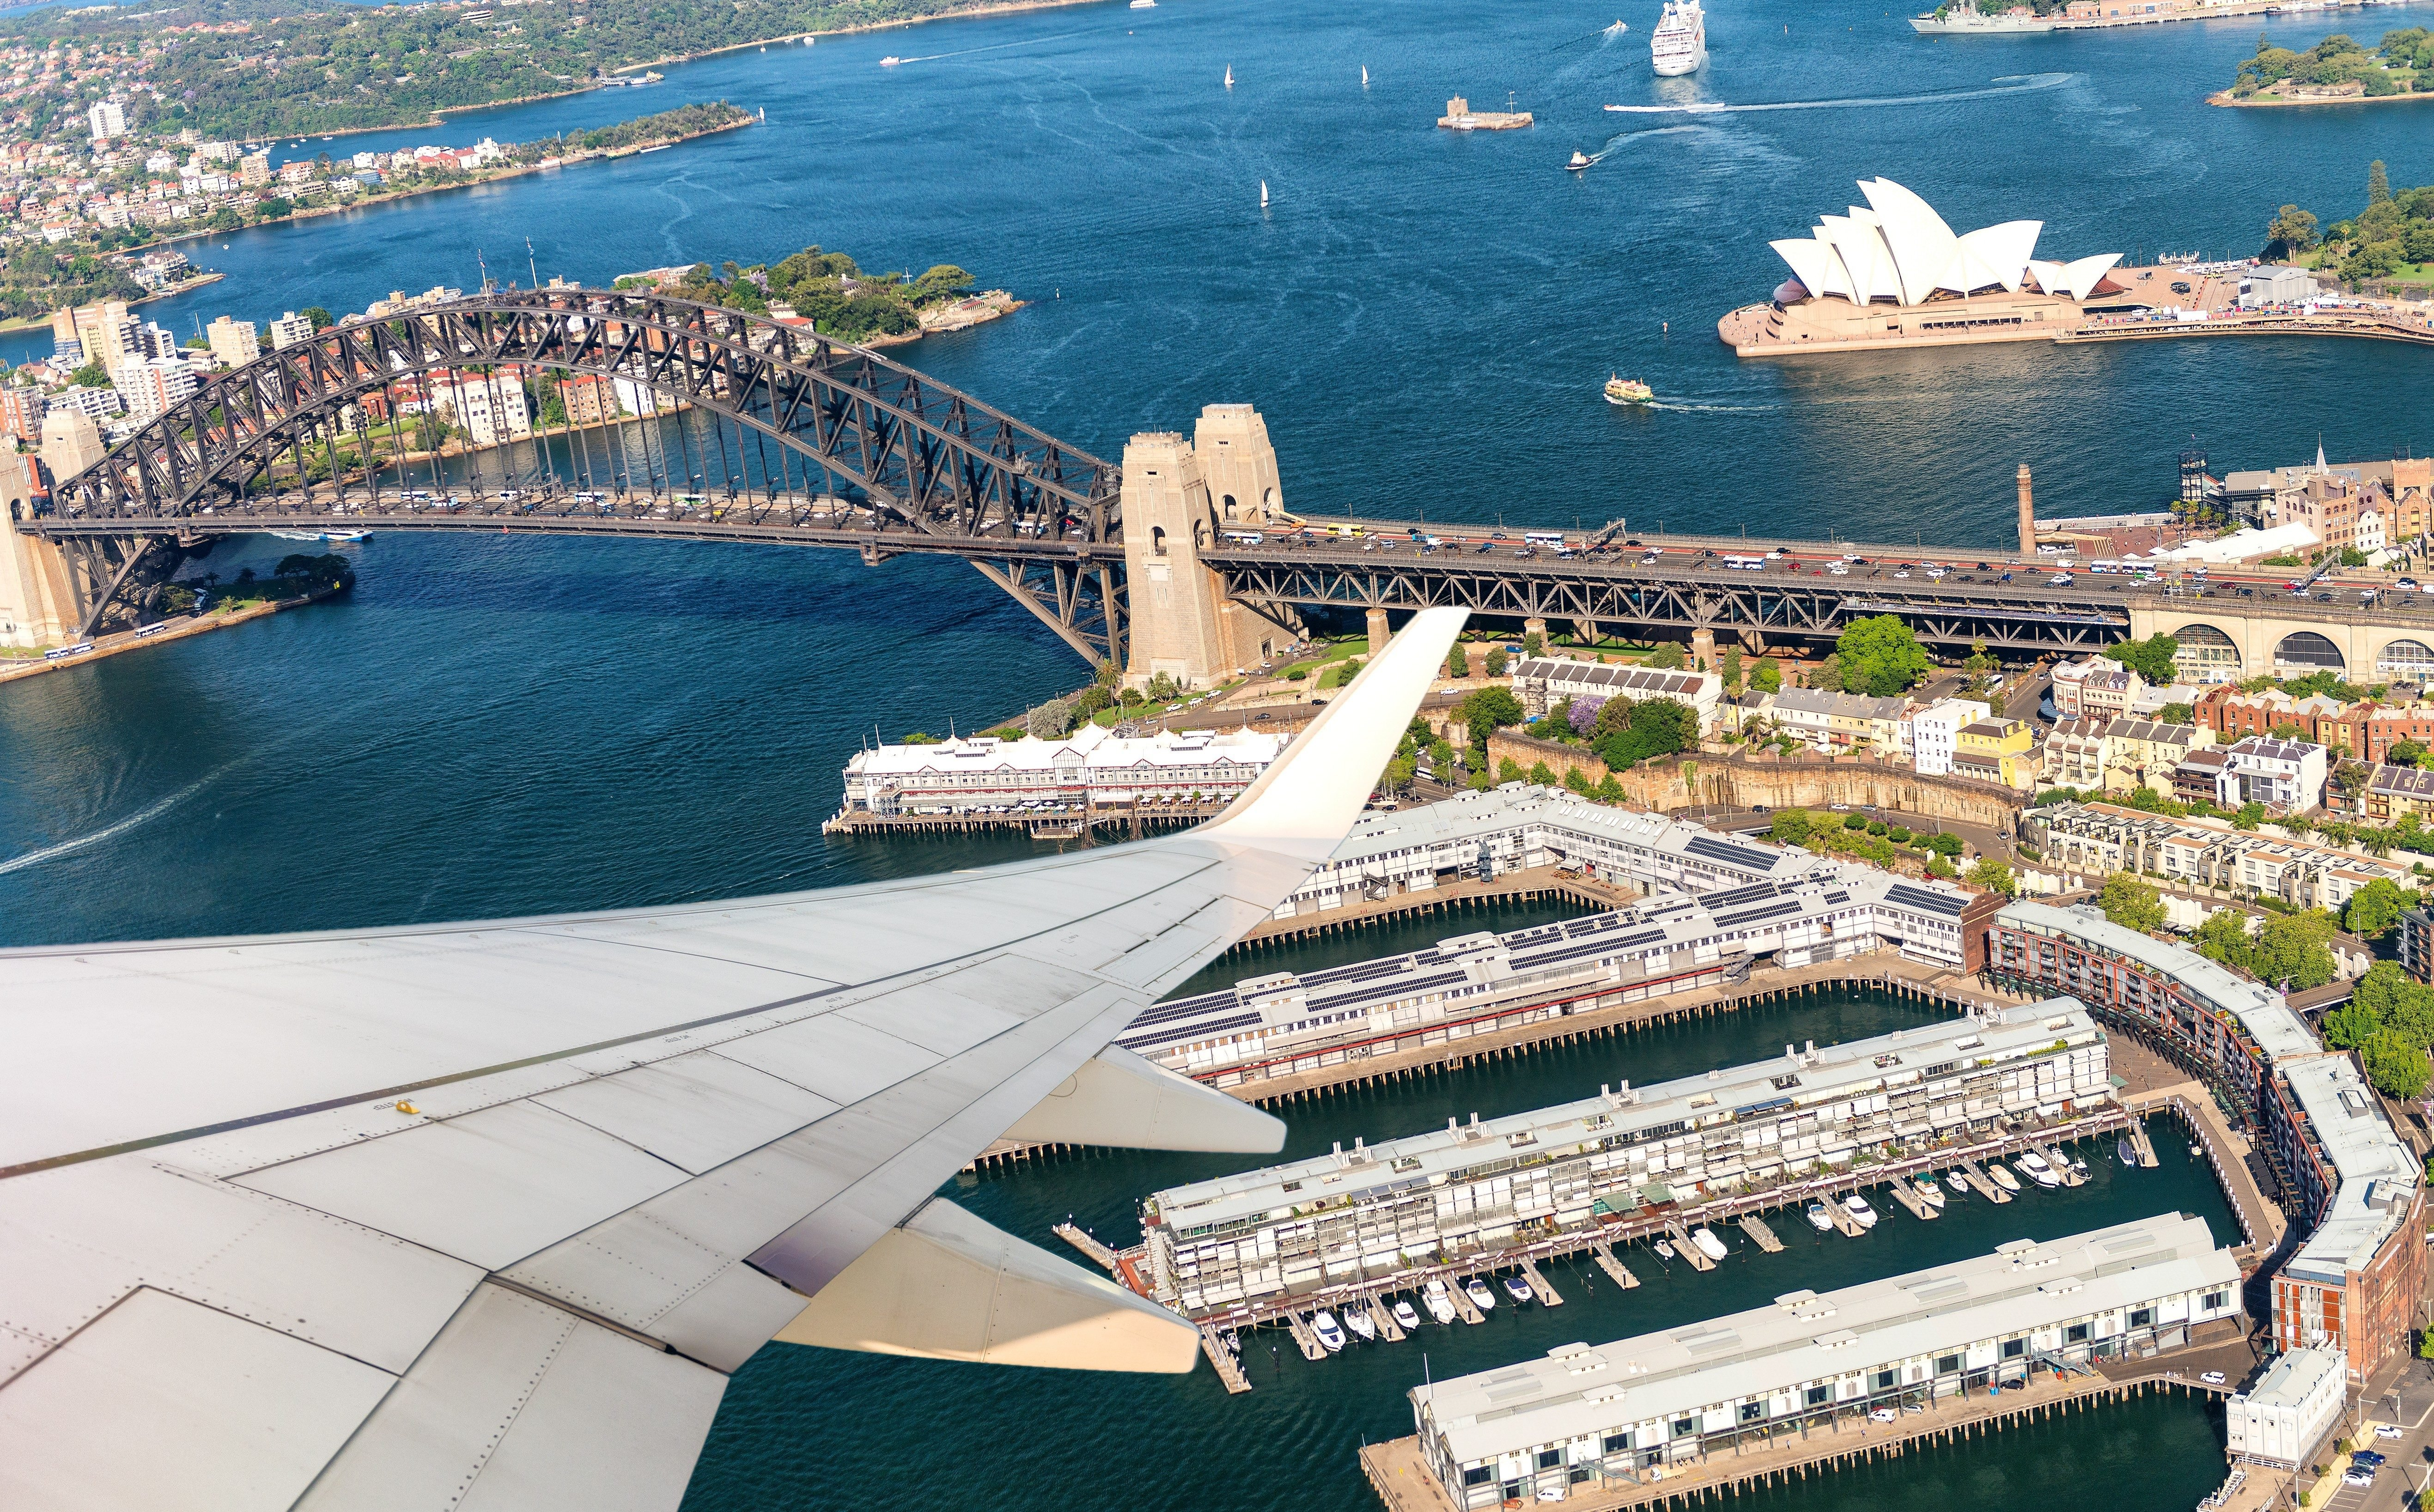 Airplane flying over Sydney. Tourism concept.